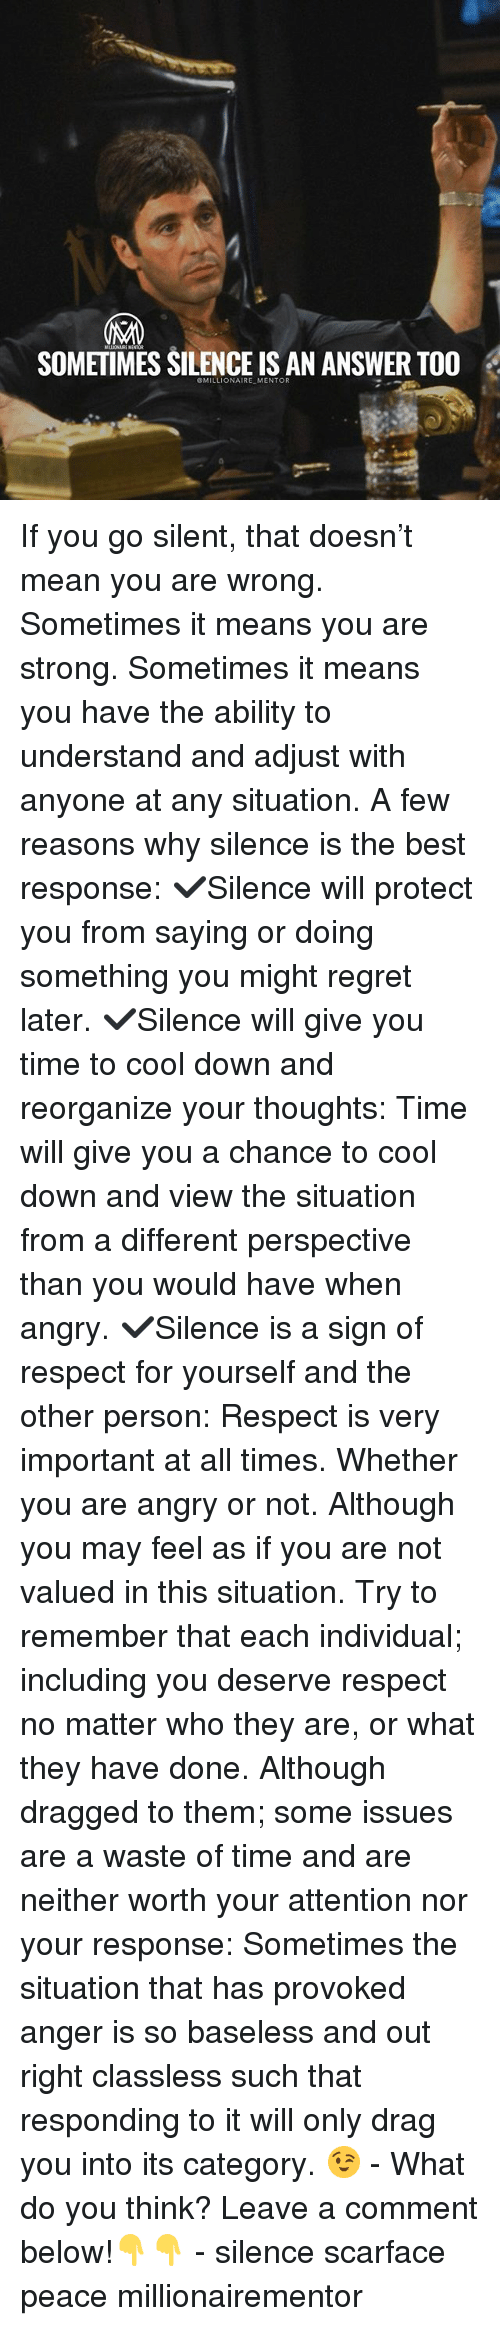 Memes, Regret, and Respect: SOMETIMES SILENCE IS AN ANSWER TOO  @MILLIONAIRE_MENTOR If you go silent, that doesn't mean you are wrong. Sometimes it means you are strong. Sometimes it means you have the ability to understand and adjust with anyone at any situation. A few reasons why silence is the best response: ✔️Silence will protect you from saying or doing something you might regret later. ✔️Silence will give you time to cool down and reorganize your thoughts: Time will give you a chance to cool down and view the situation from a different perspective than you would have when angry. ✔️Silence is a sign of respect for yourself and the other person: Respect is very important at all times. Whether you are angry or not. Although you may feel as if you are not valued in this situation. Try to remember that each individual; including you deserve respect no matter who they are, or what they have done. Although dragged to them; some issues are a waste of time and are neither worth your attention nor your response: Sometimes the situation that has provoked anger is so baseless and out right classless such that responding to it will only drag you into its category. 😉 - What do you think? Leave a comment below!👇👇 - silence scarface peace millionairementor